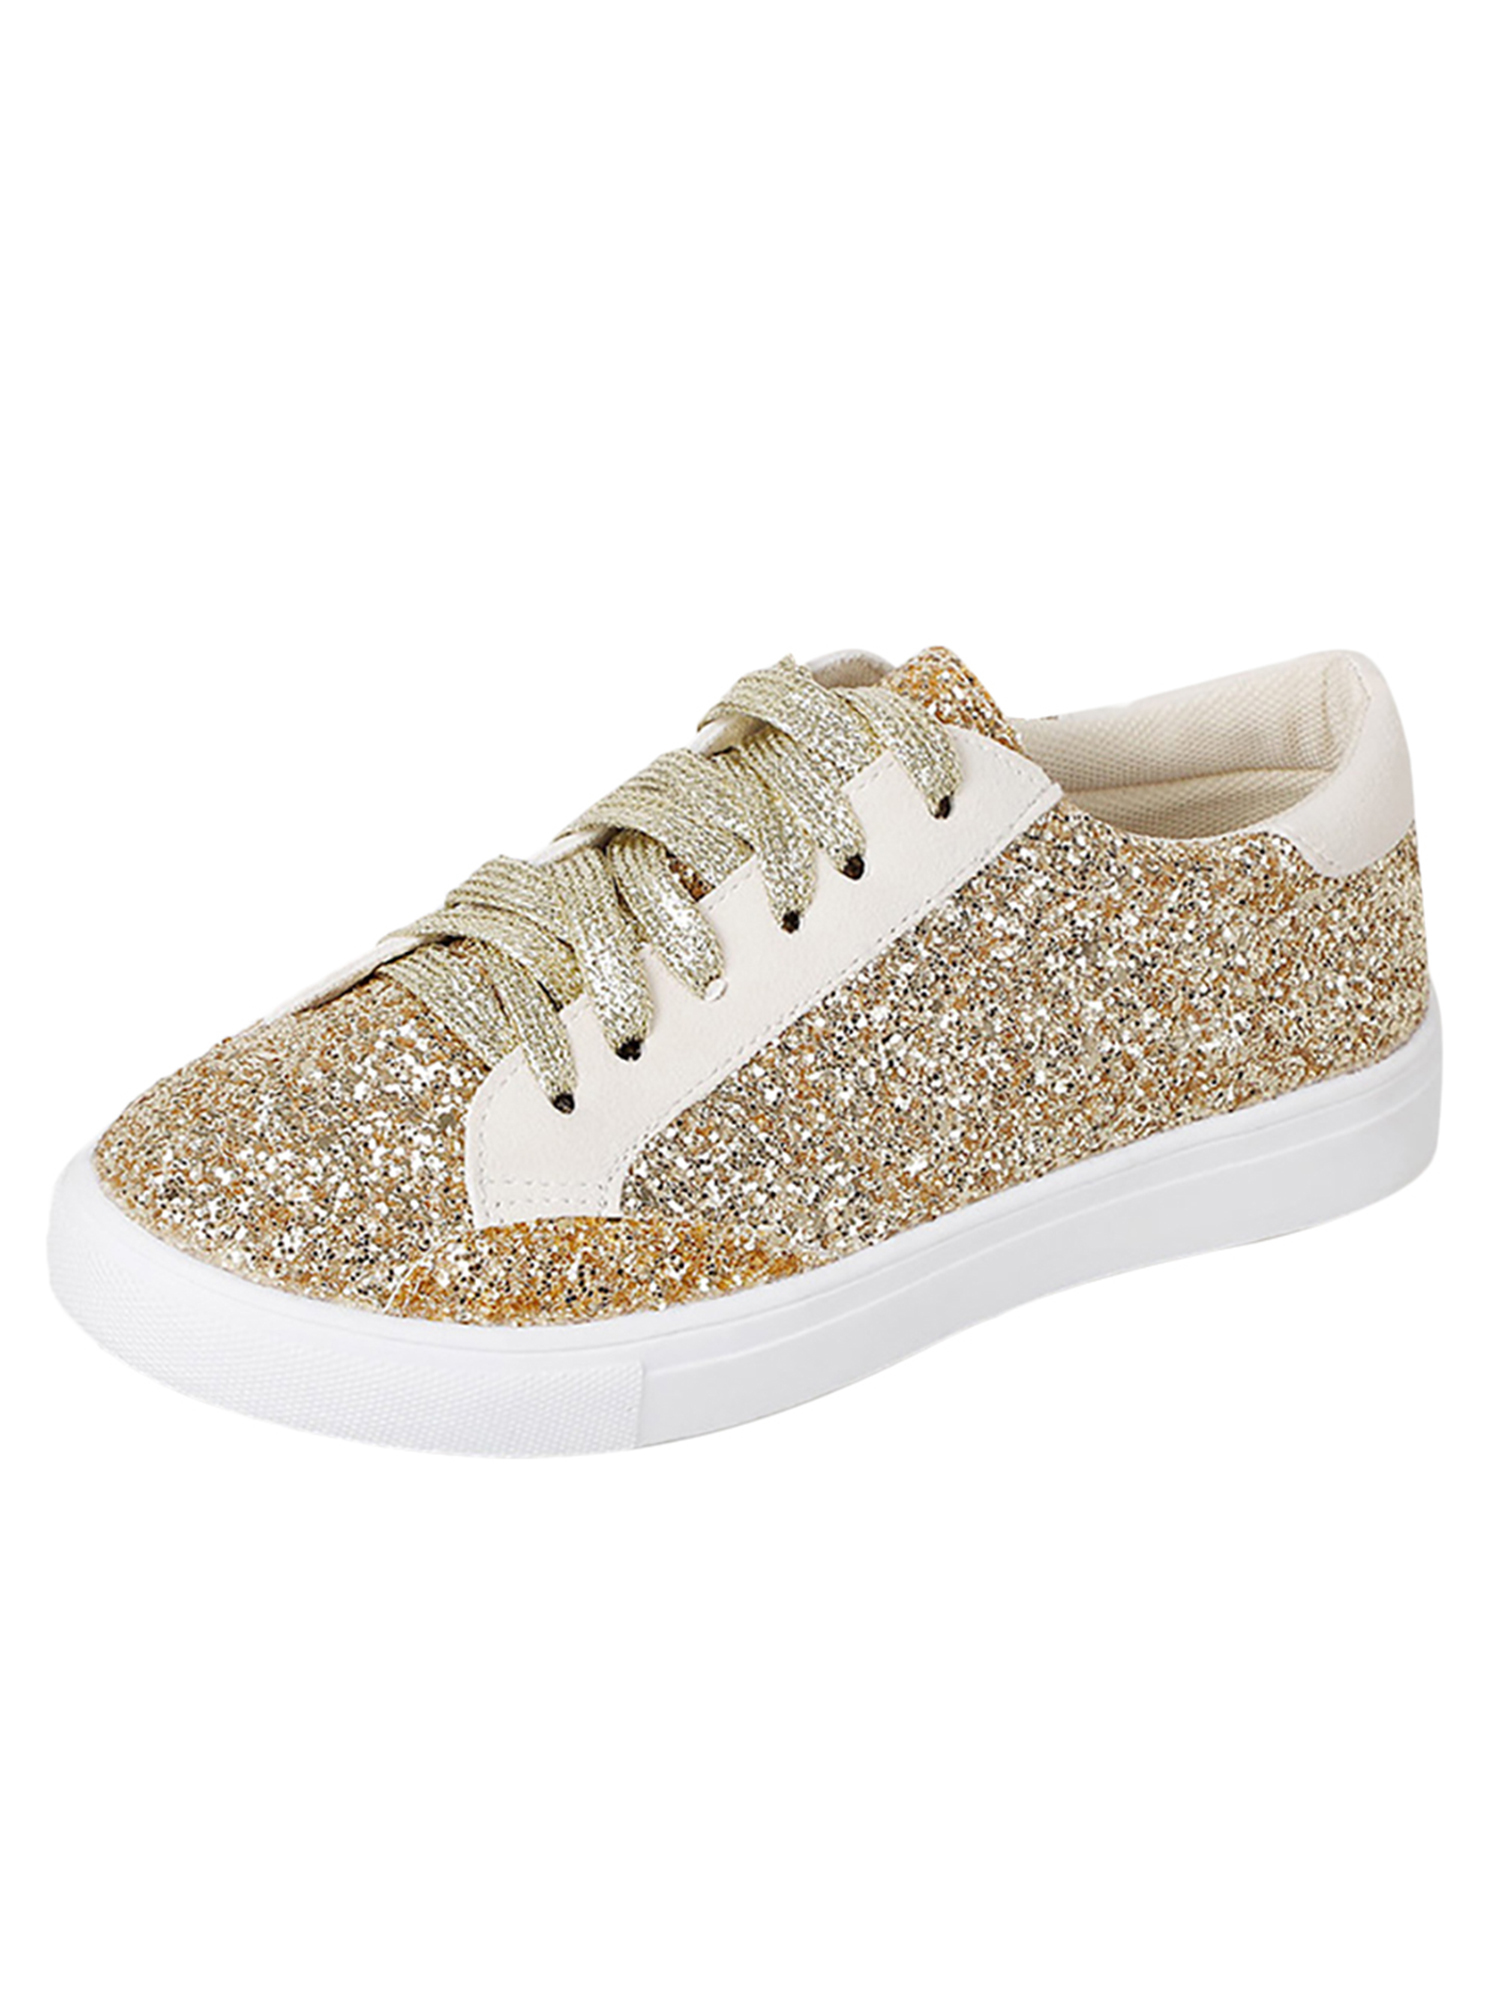 Sports Trainers Sequin Slip